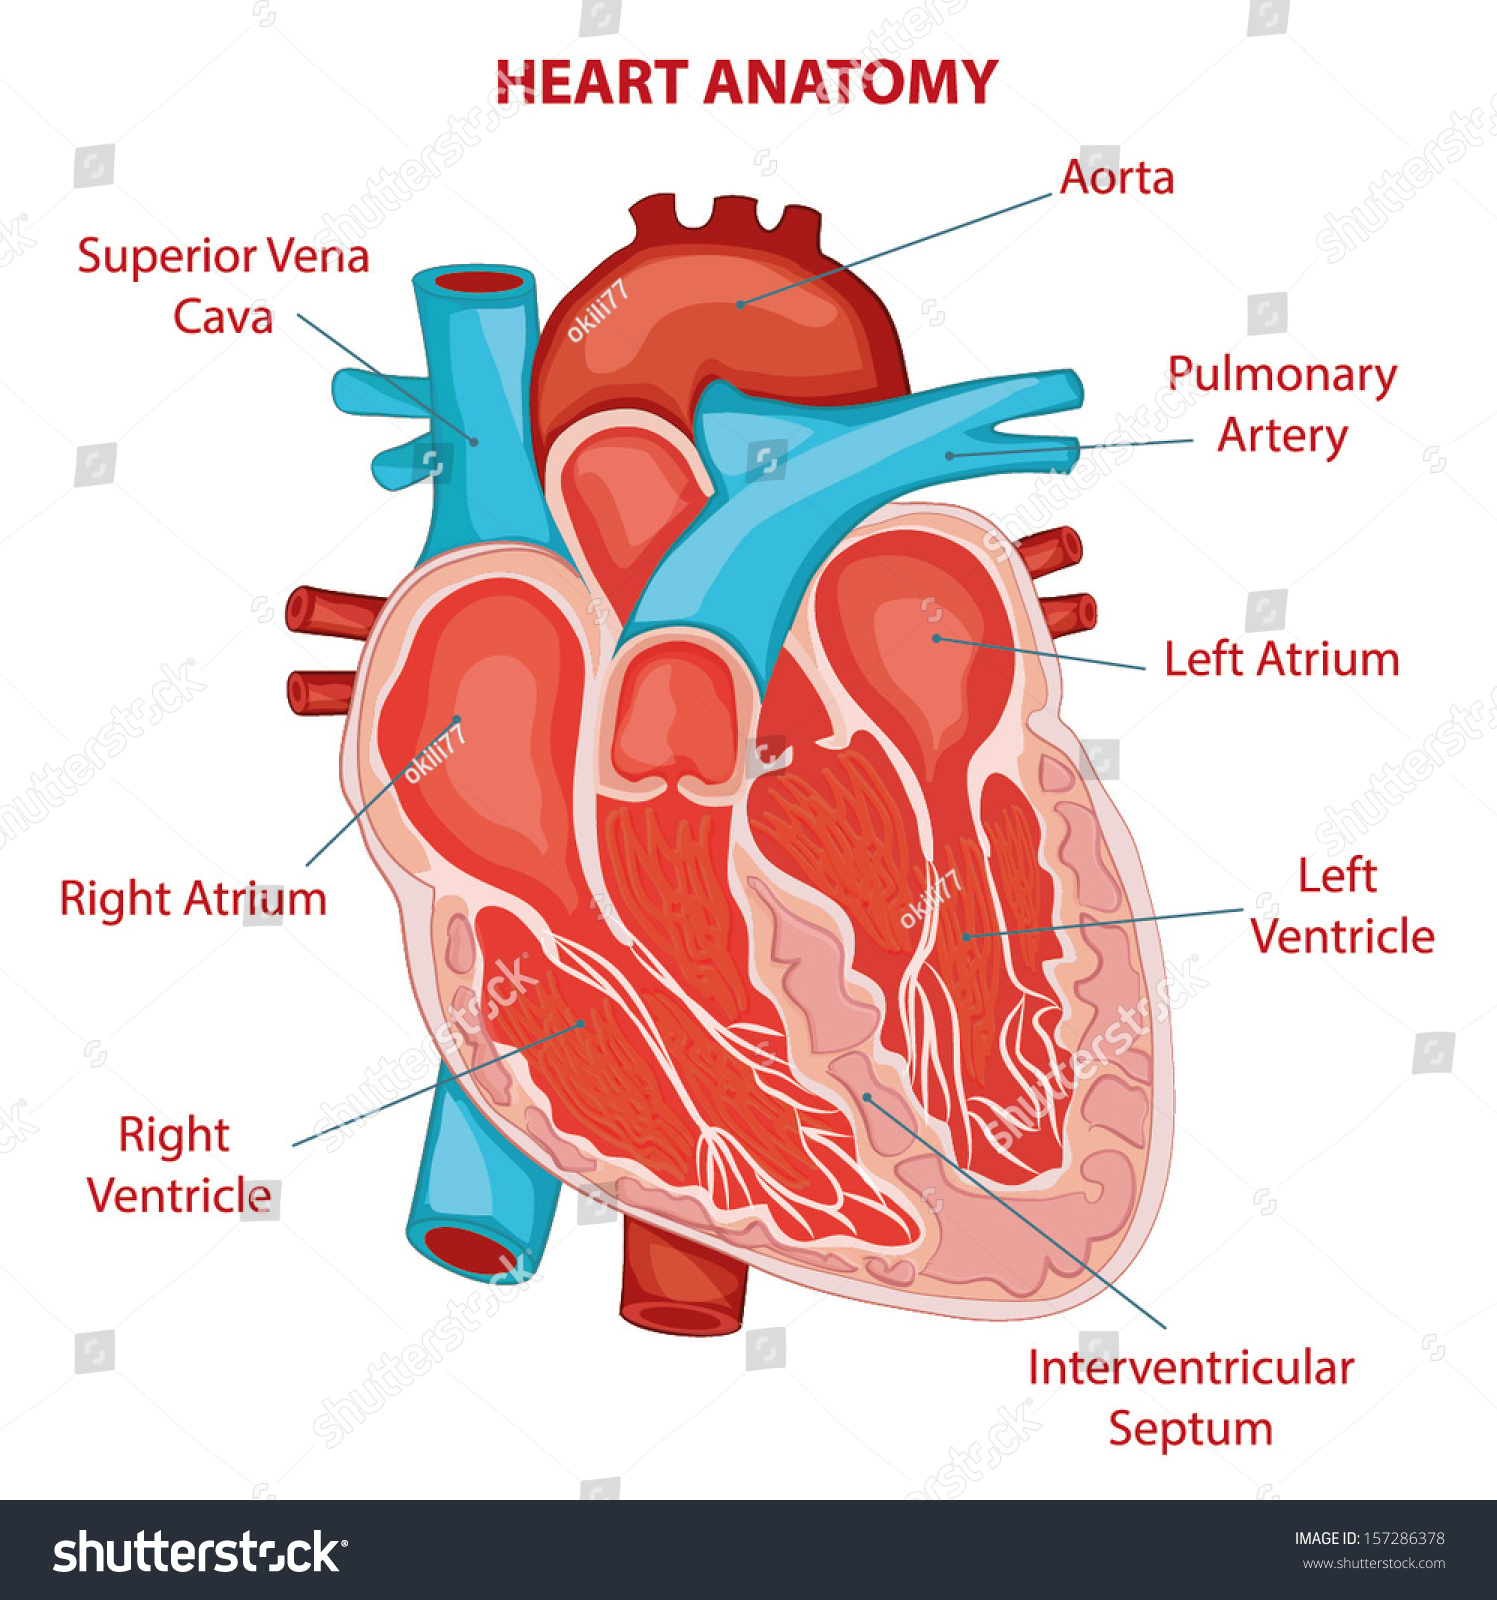 Heart Anatomy Cross Section Diagram Stock Vector Royalty Free